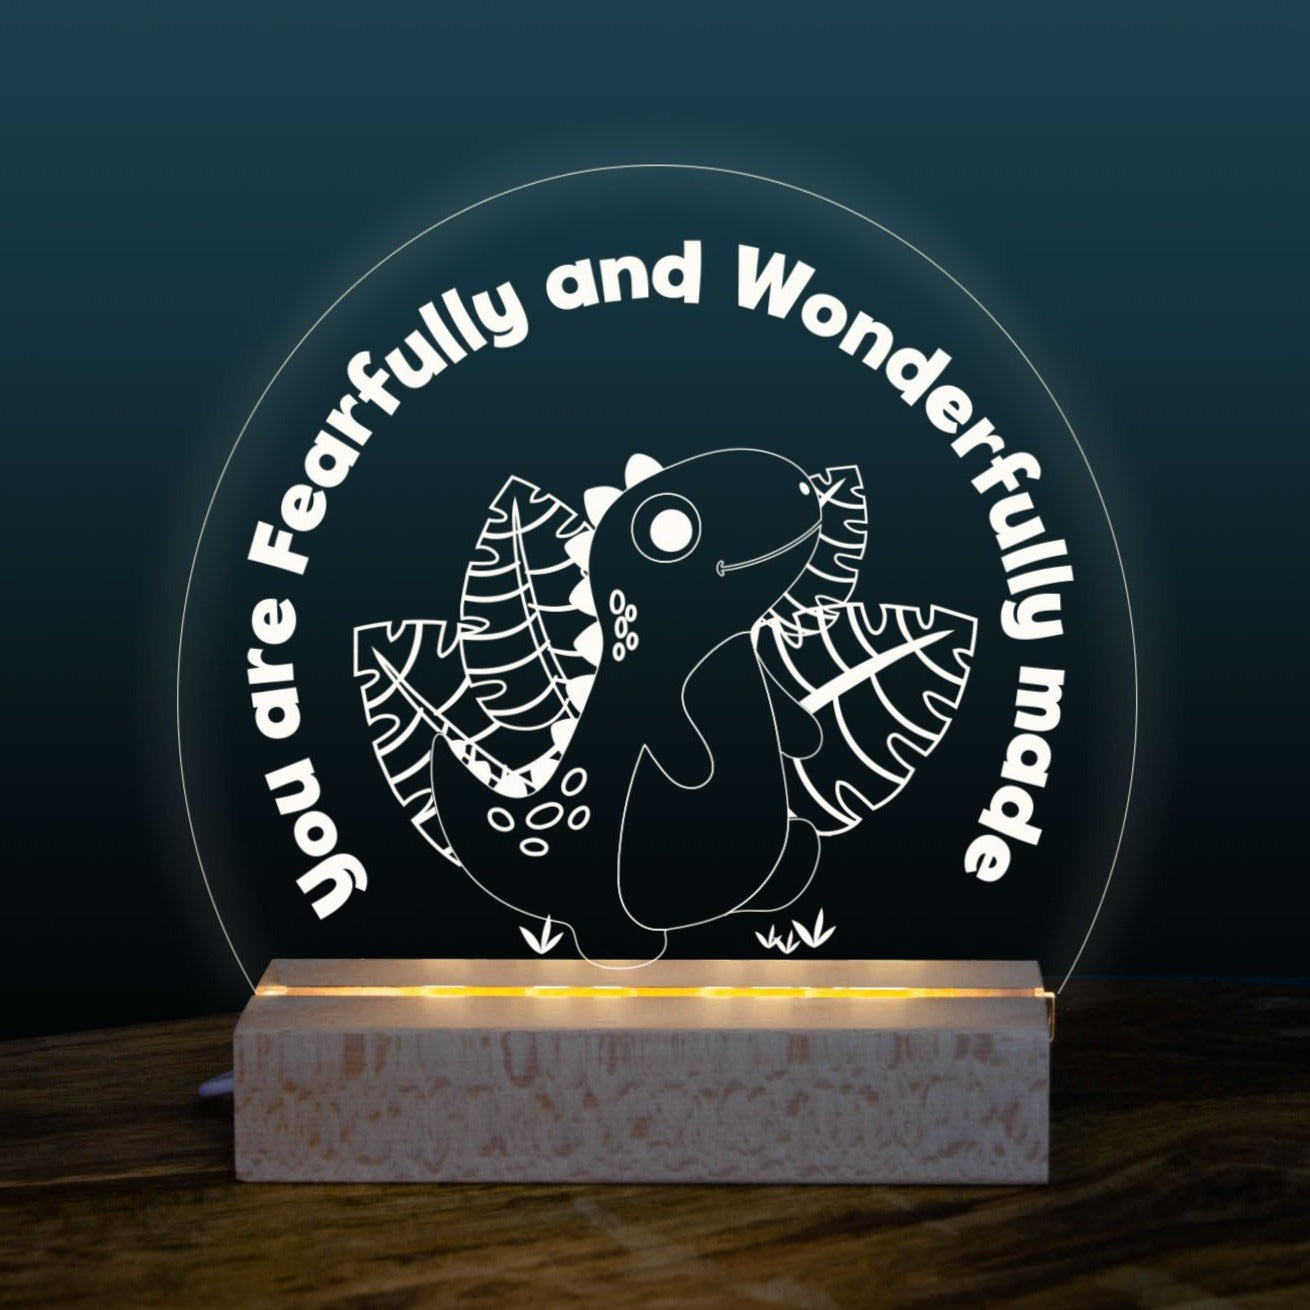 Fearfully & Wonderfully made night light design